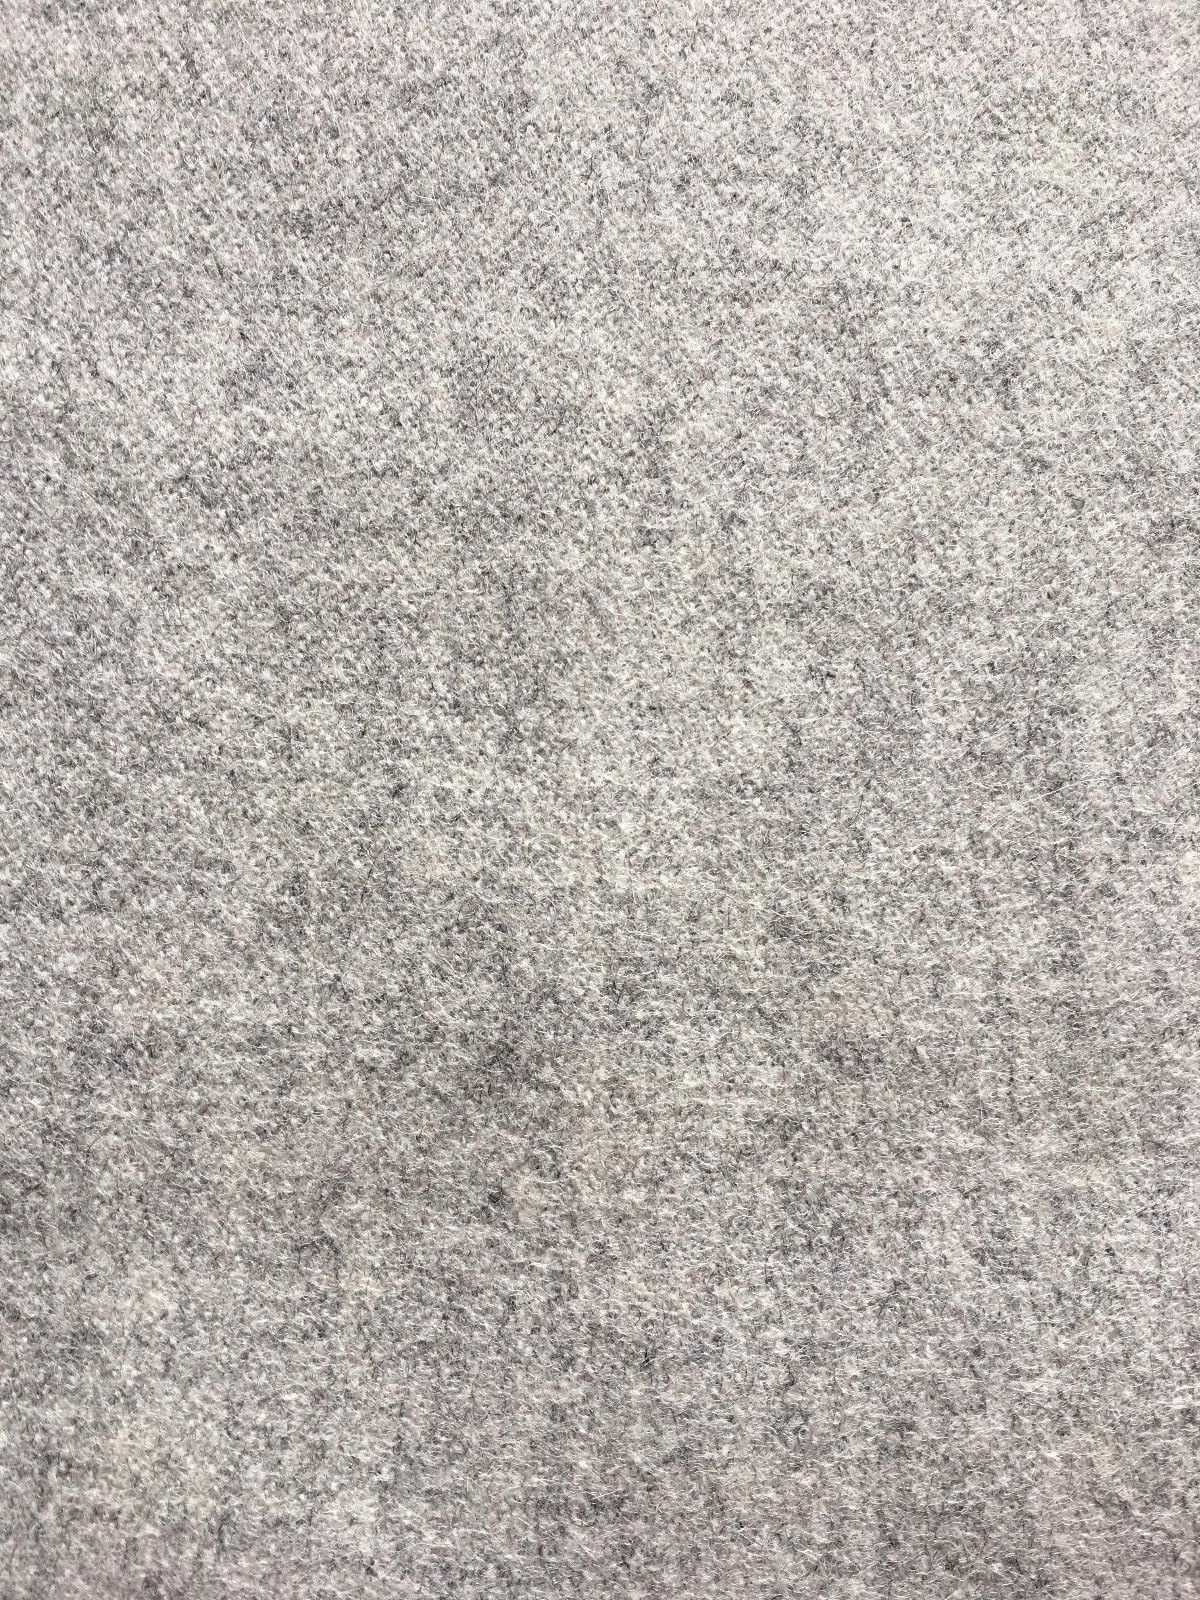 1.5 yds Woven Wool Upholstery Fabric Mid Century Gray Melange RU